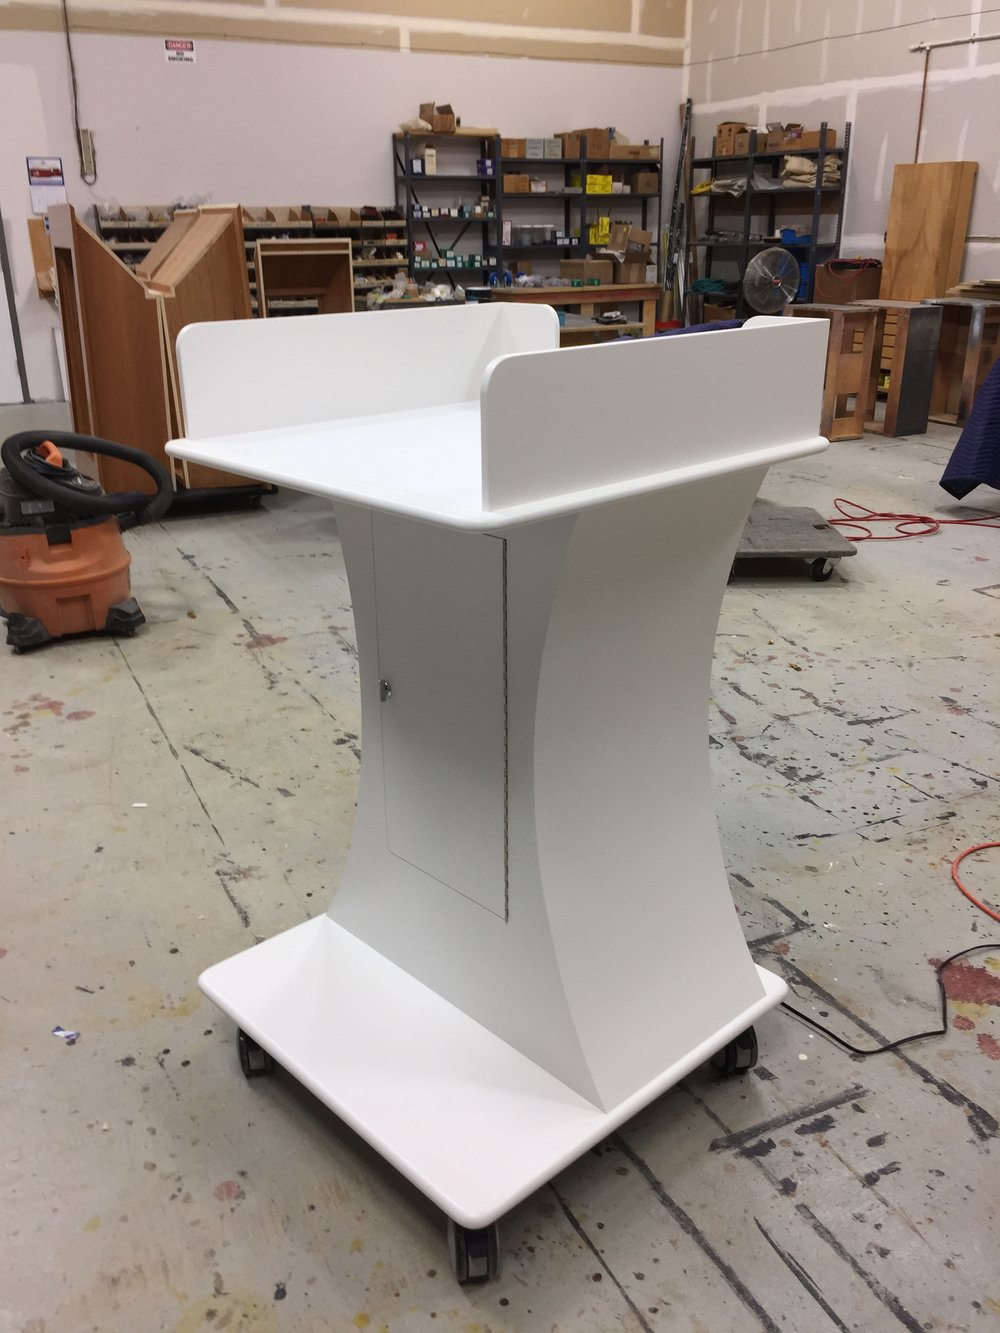 Mobile projector cart (down)